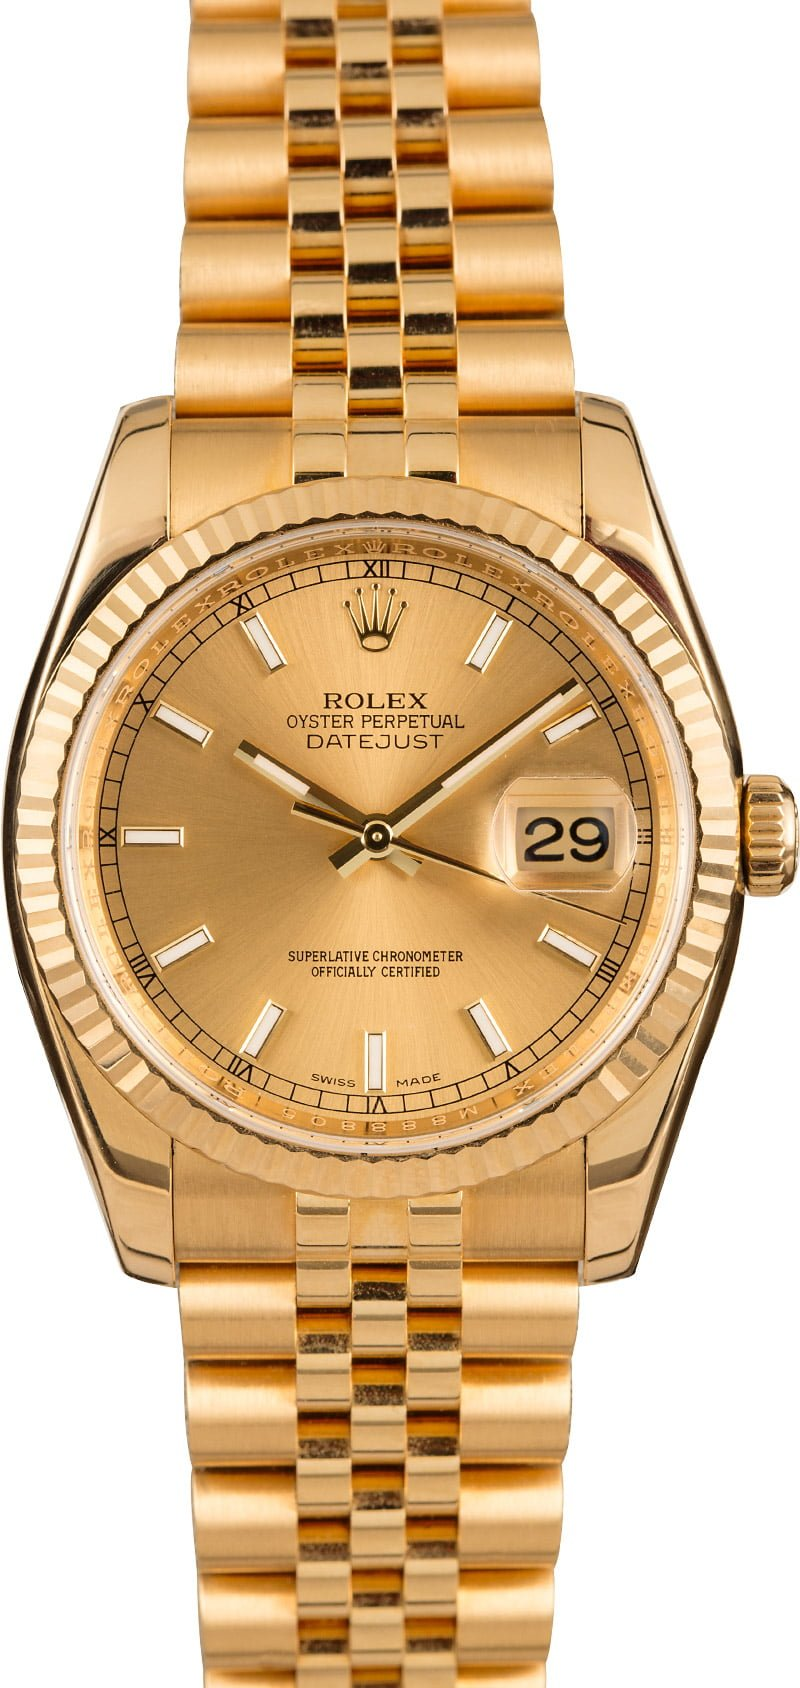 Best Pre-Owned Rolex Watches to Invest in 2020